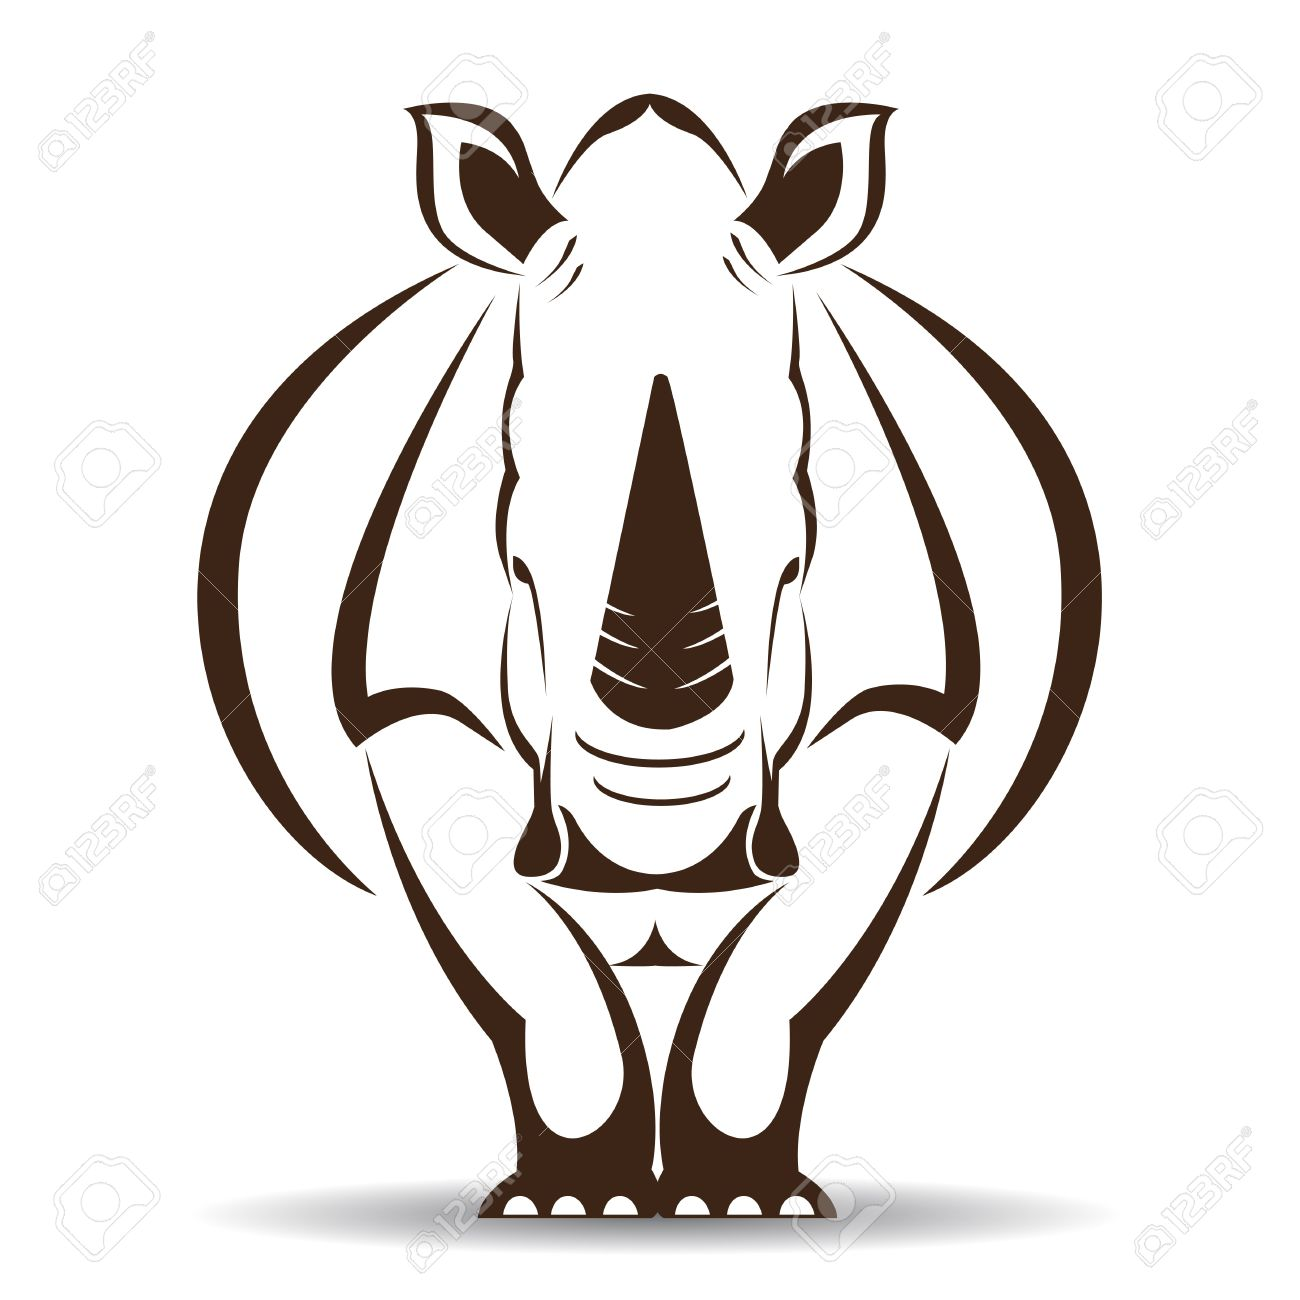 4565 rhino head stock vector illustration and royalty free rhino image of an rhino on white background ccuart Gallery